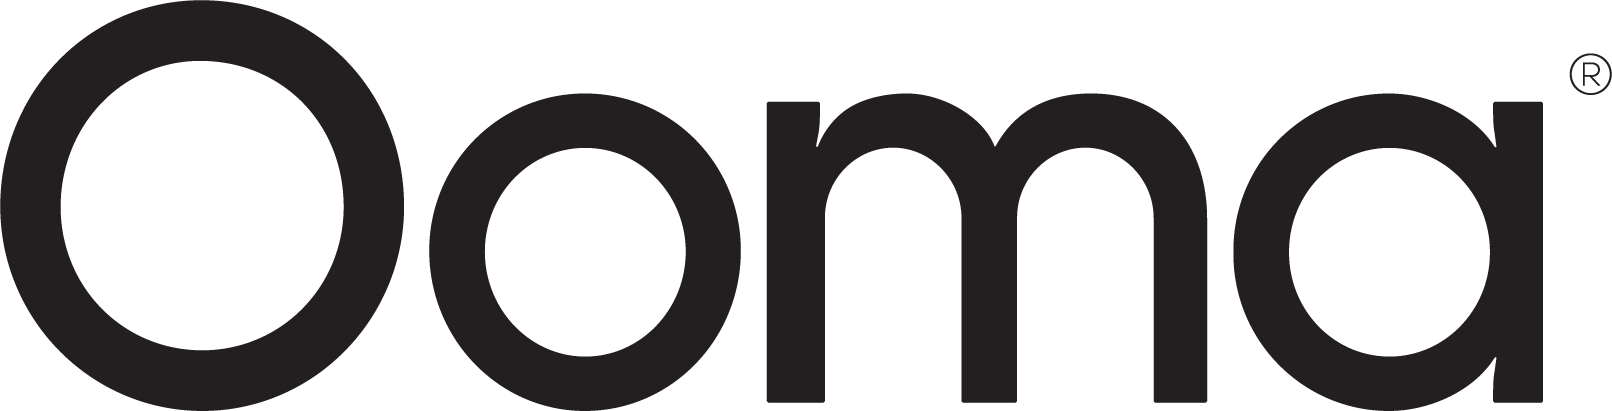 Ooma